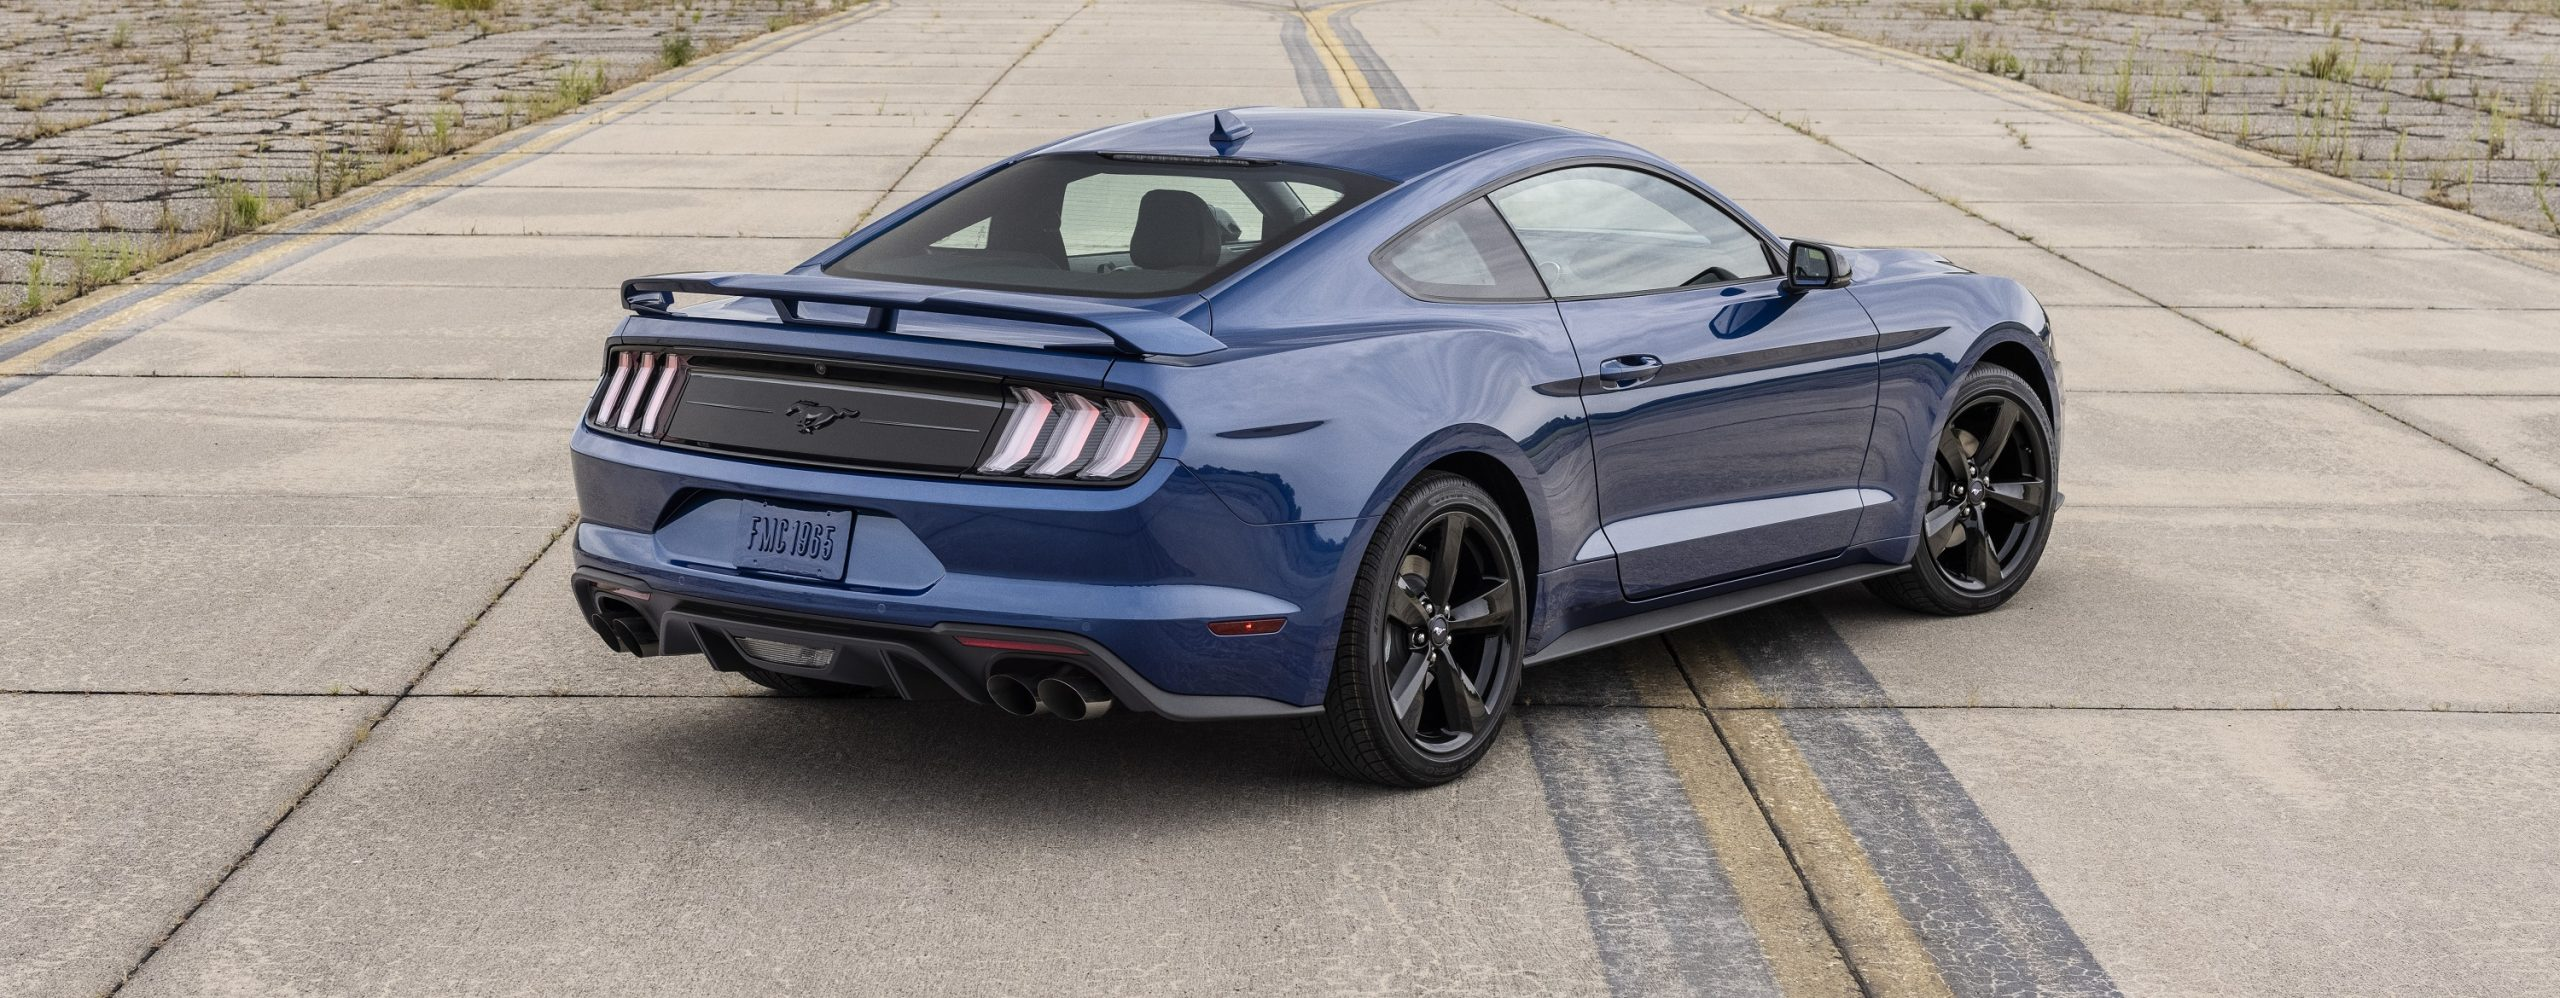 The rear of the 2021 Ford Mustang Stealth Edition, shot from the rear 3/4